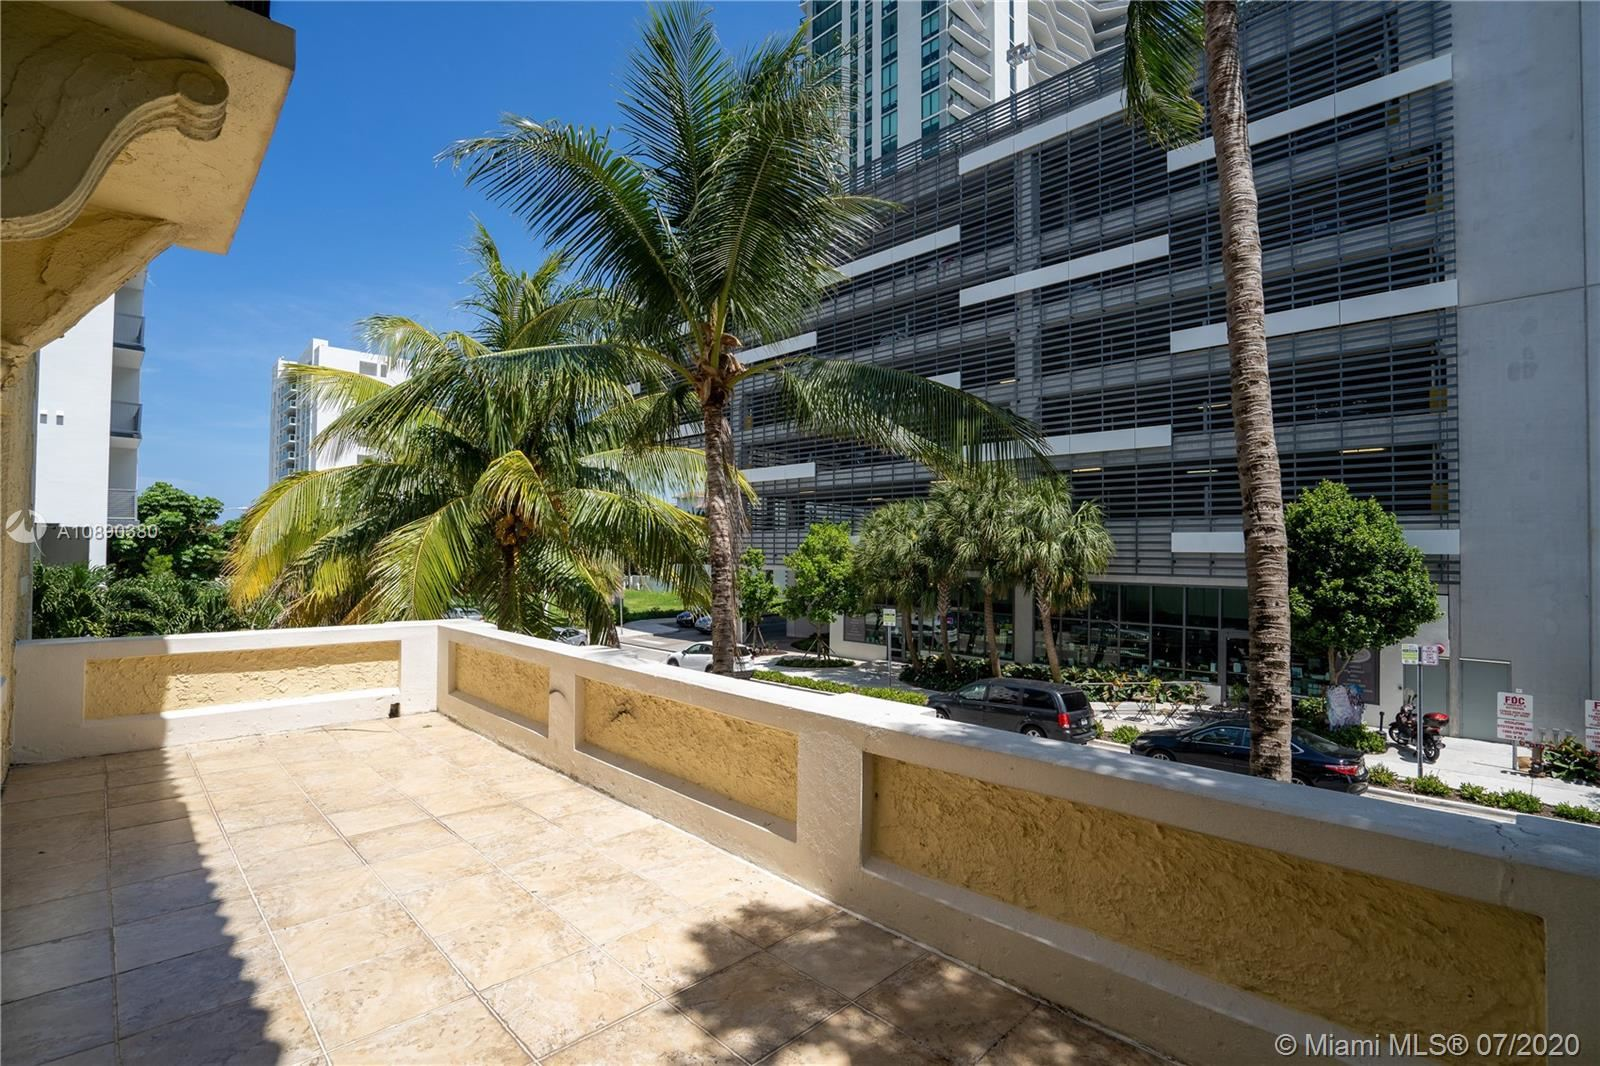 Photo of 437 NE 29 ST #106, Miami, FL 33137 (MLS # A10890380)